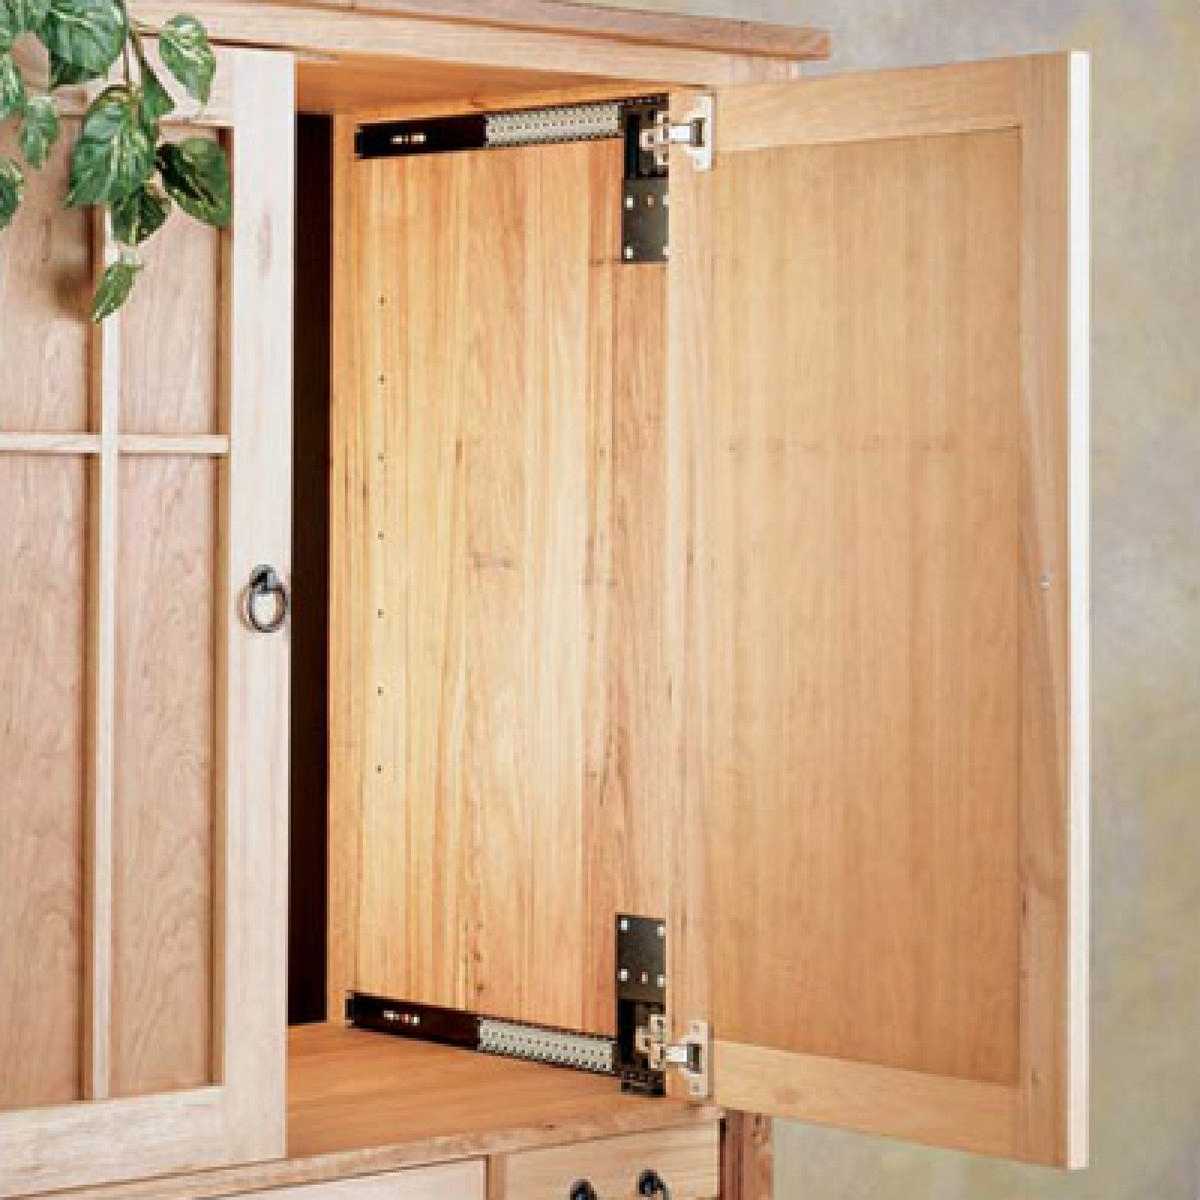 Hafele Pocket Door System